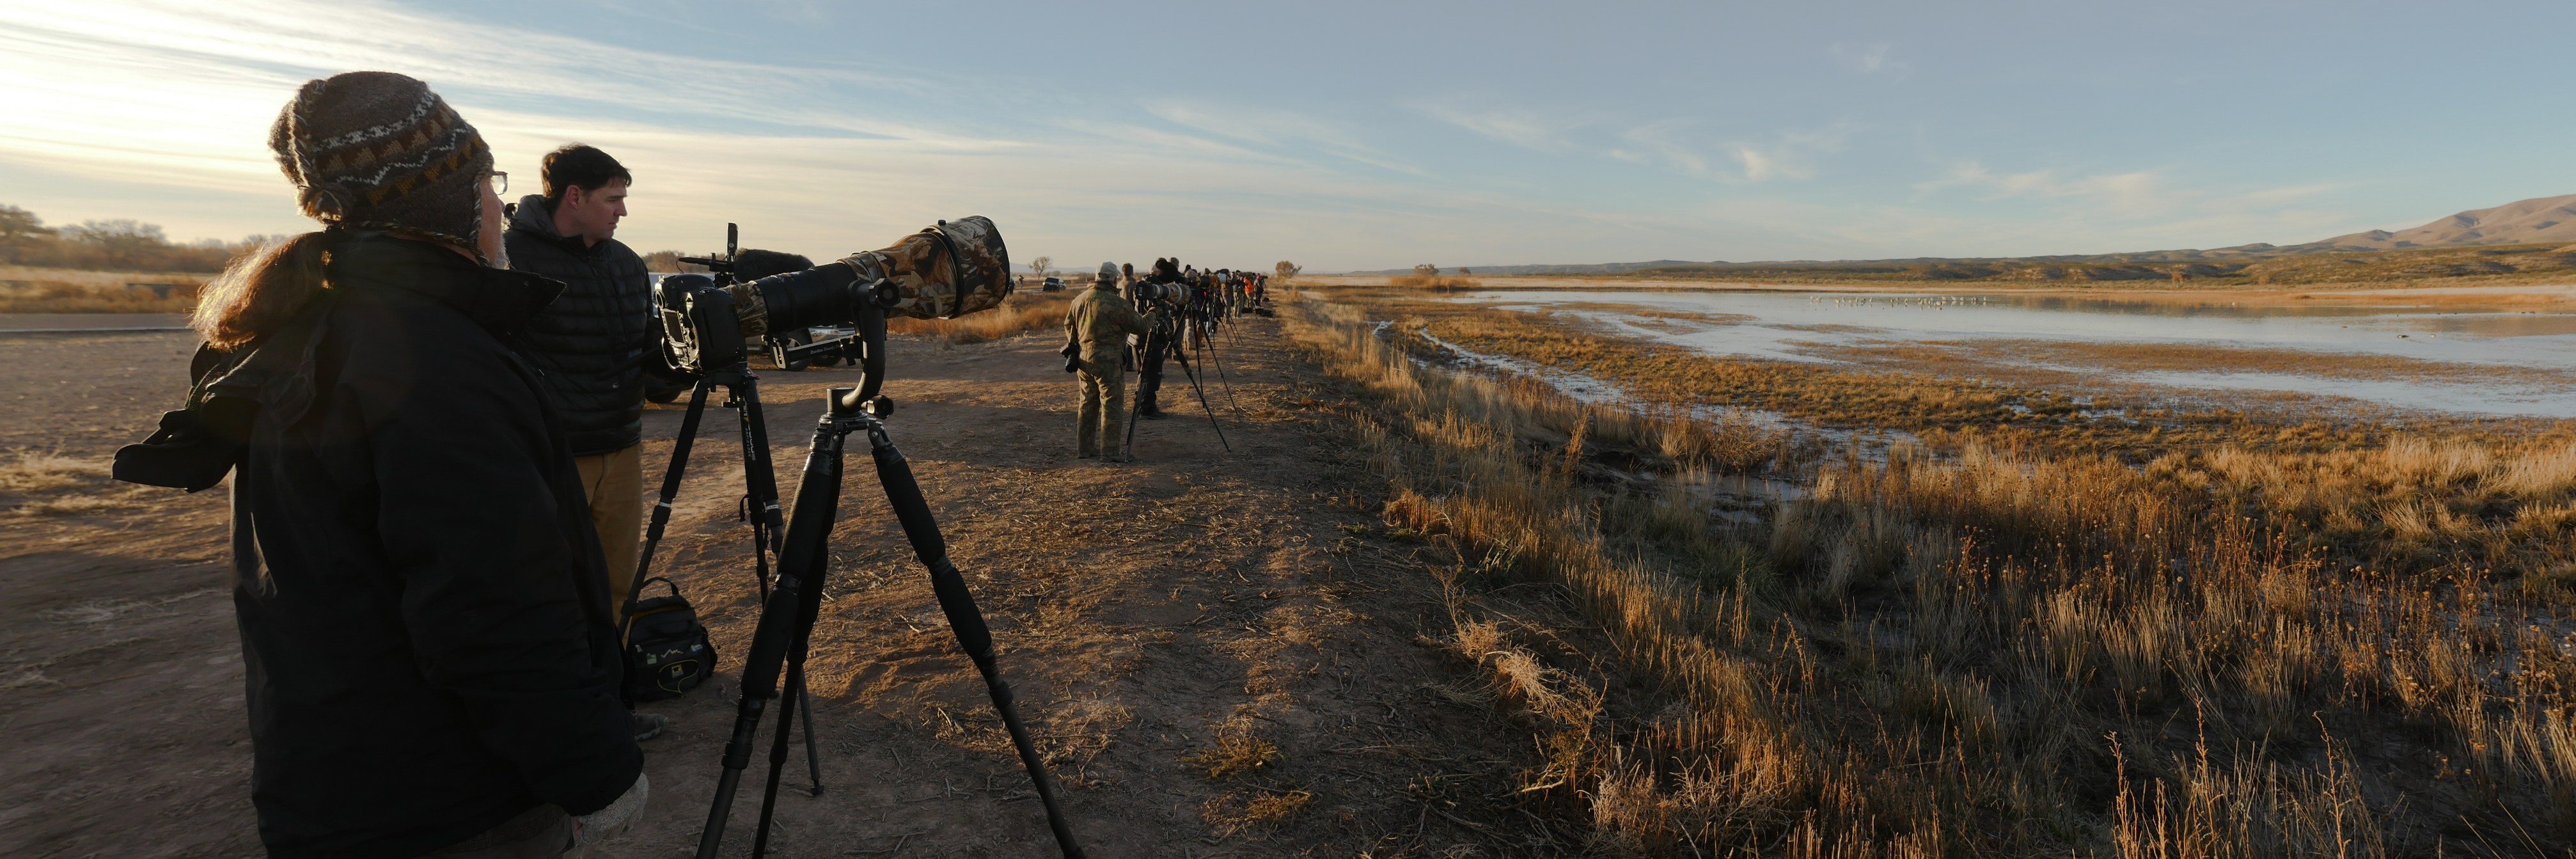 Henry Harrison on the job with a group of other photographers at Bosque del Apache NWR, New Mexico.